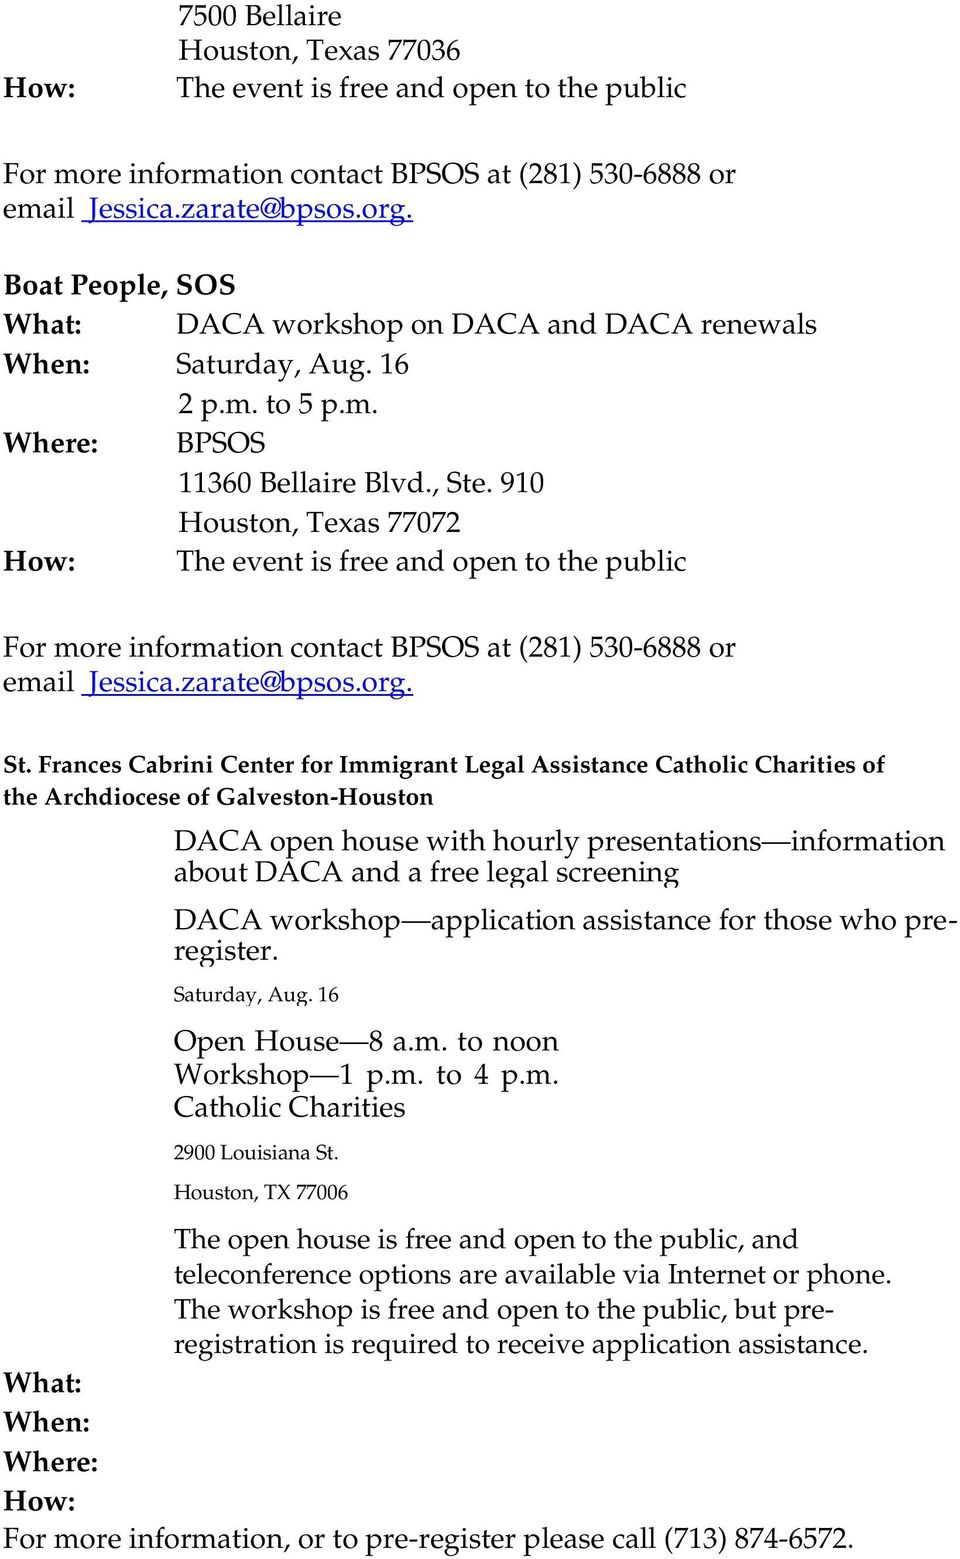 the Archdiocese of Galveston-Houston DACA open house with hourly presentations information about DACA and a free legal screening DACA workshop application assistance for those who preregister.